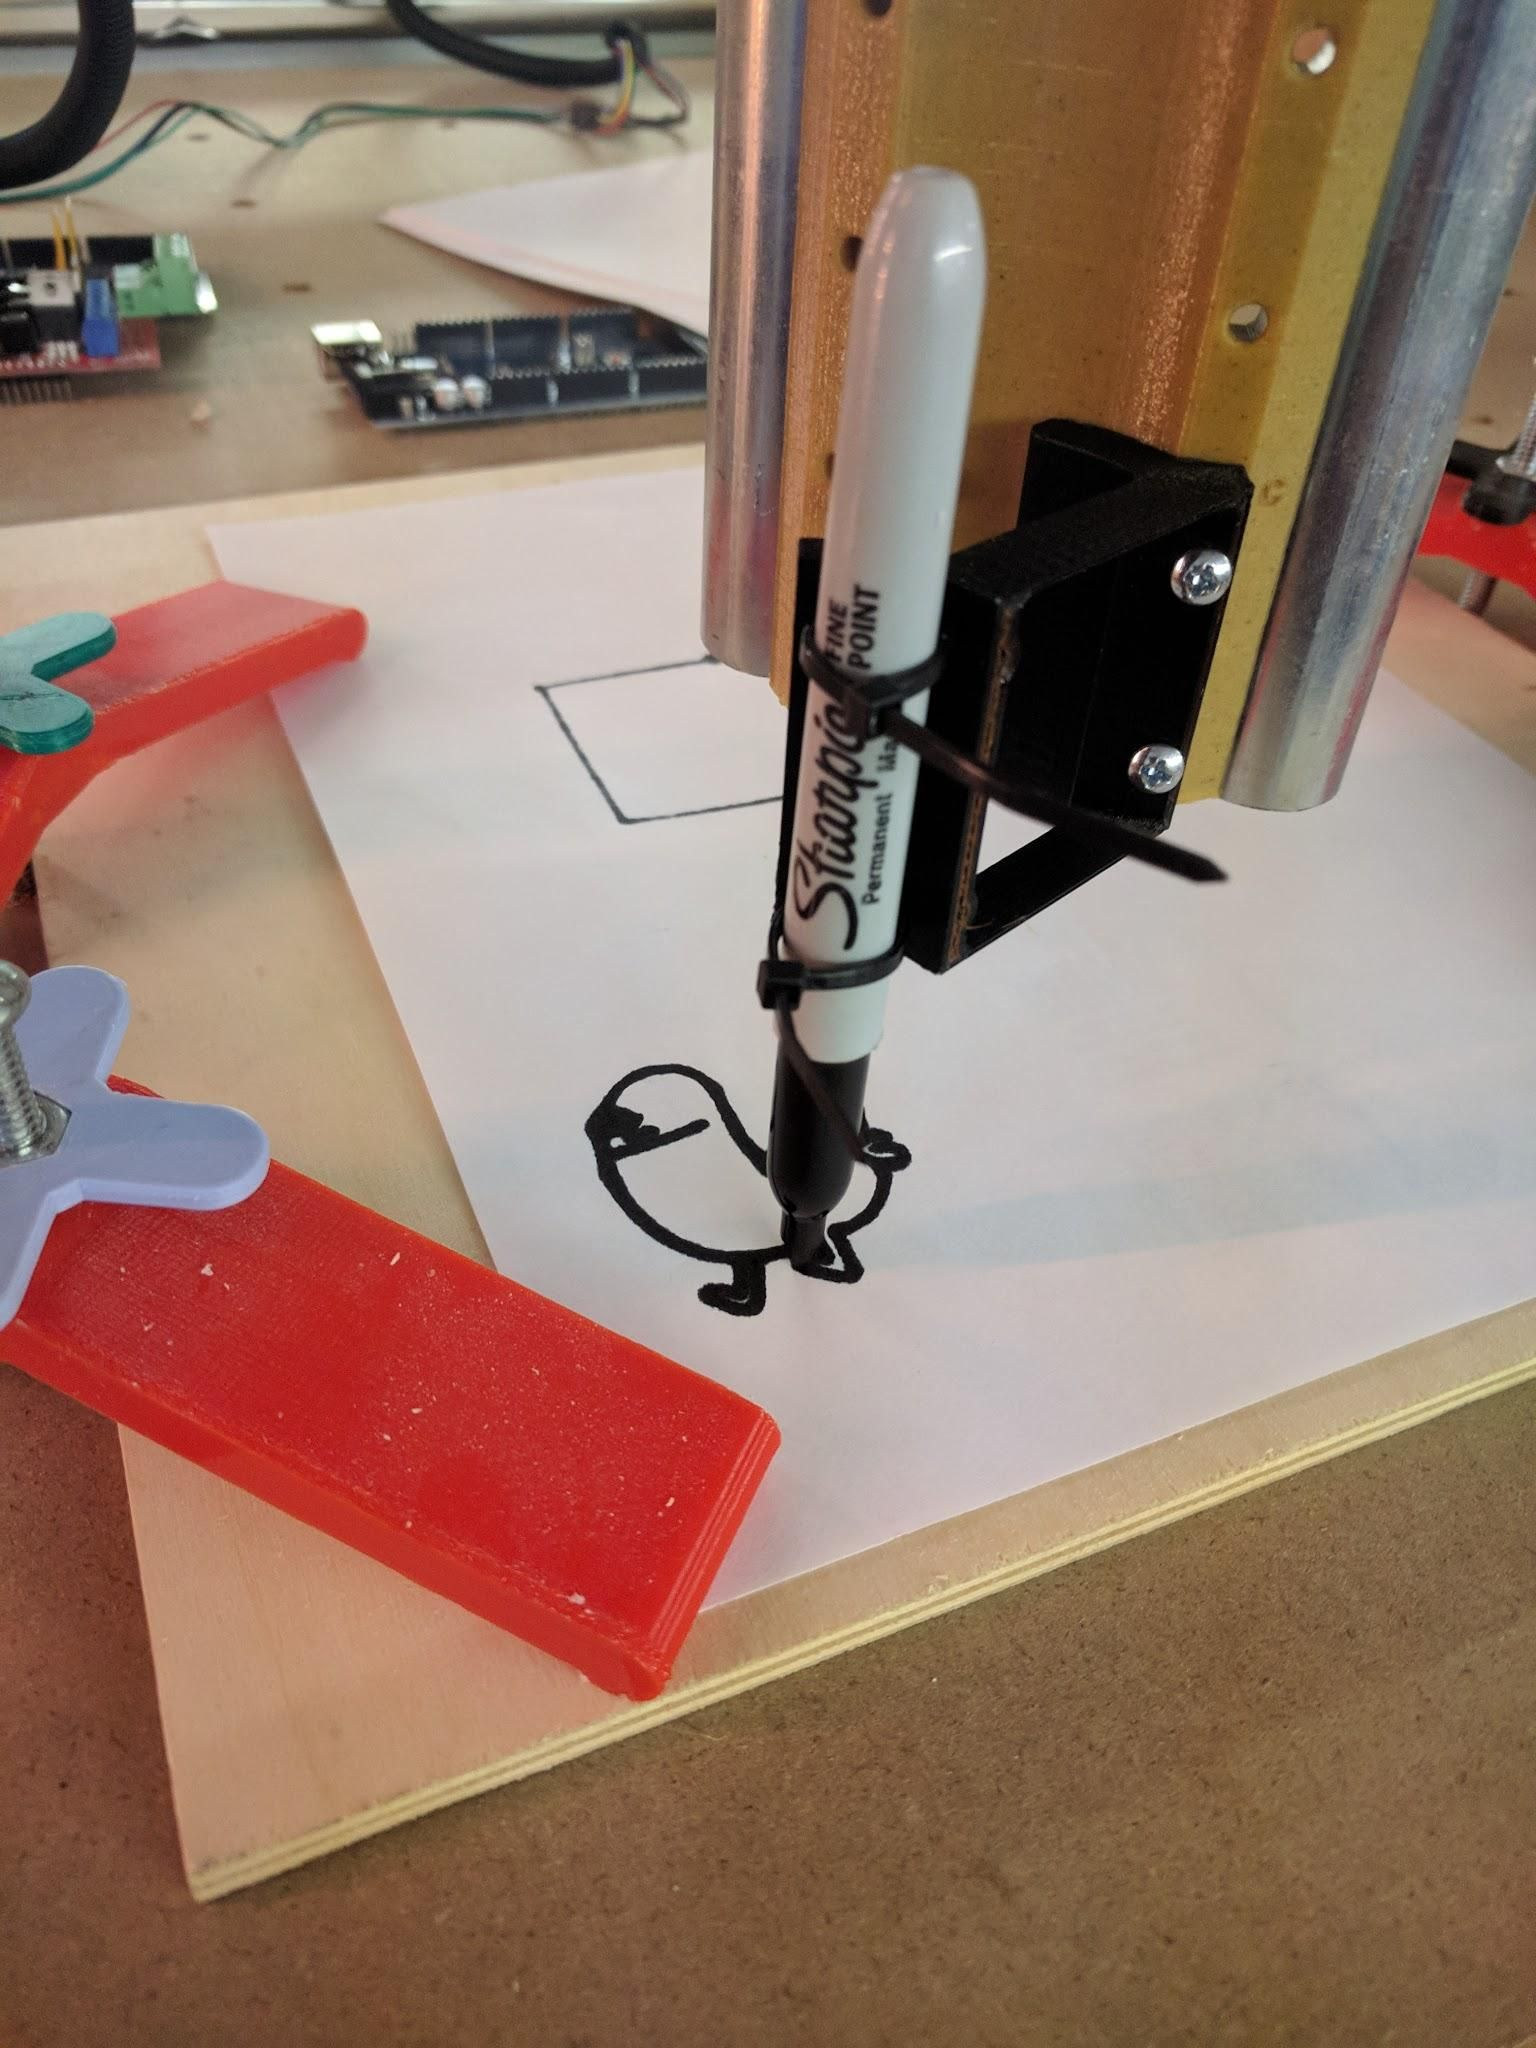 Got my MPCNC working with a gRBL board (x-post to mpcnc